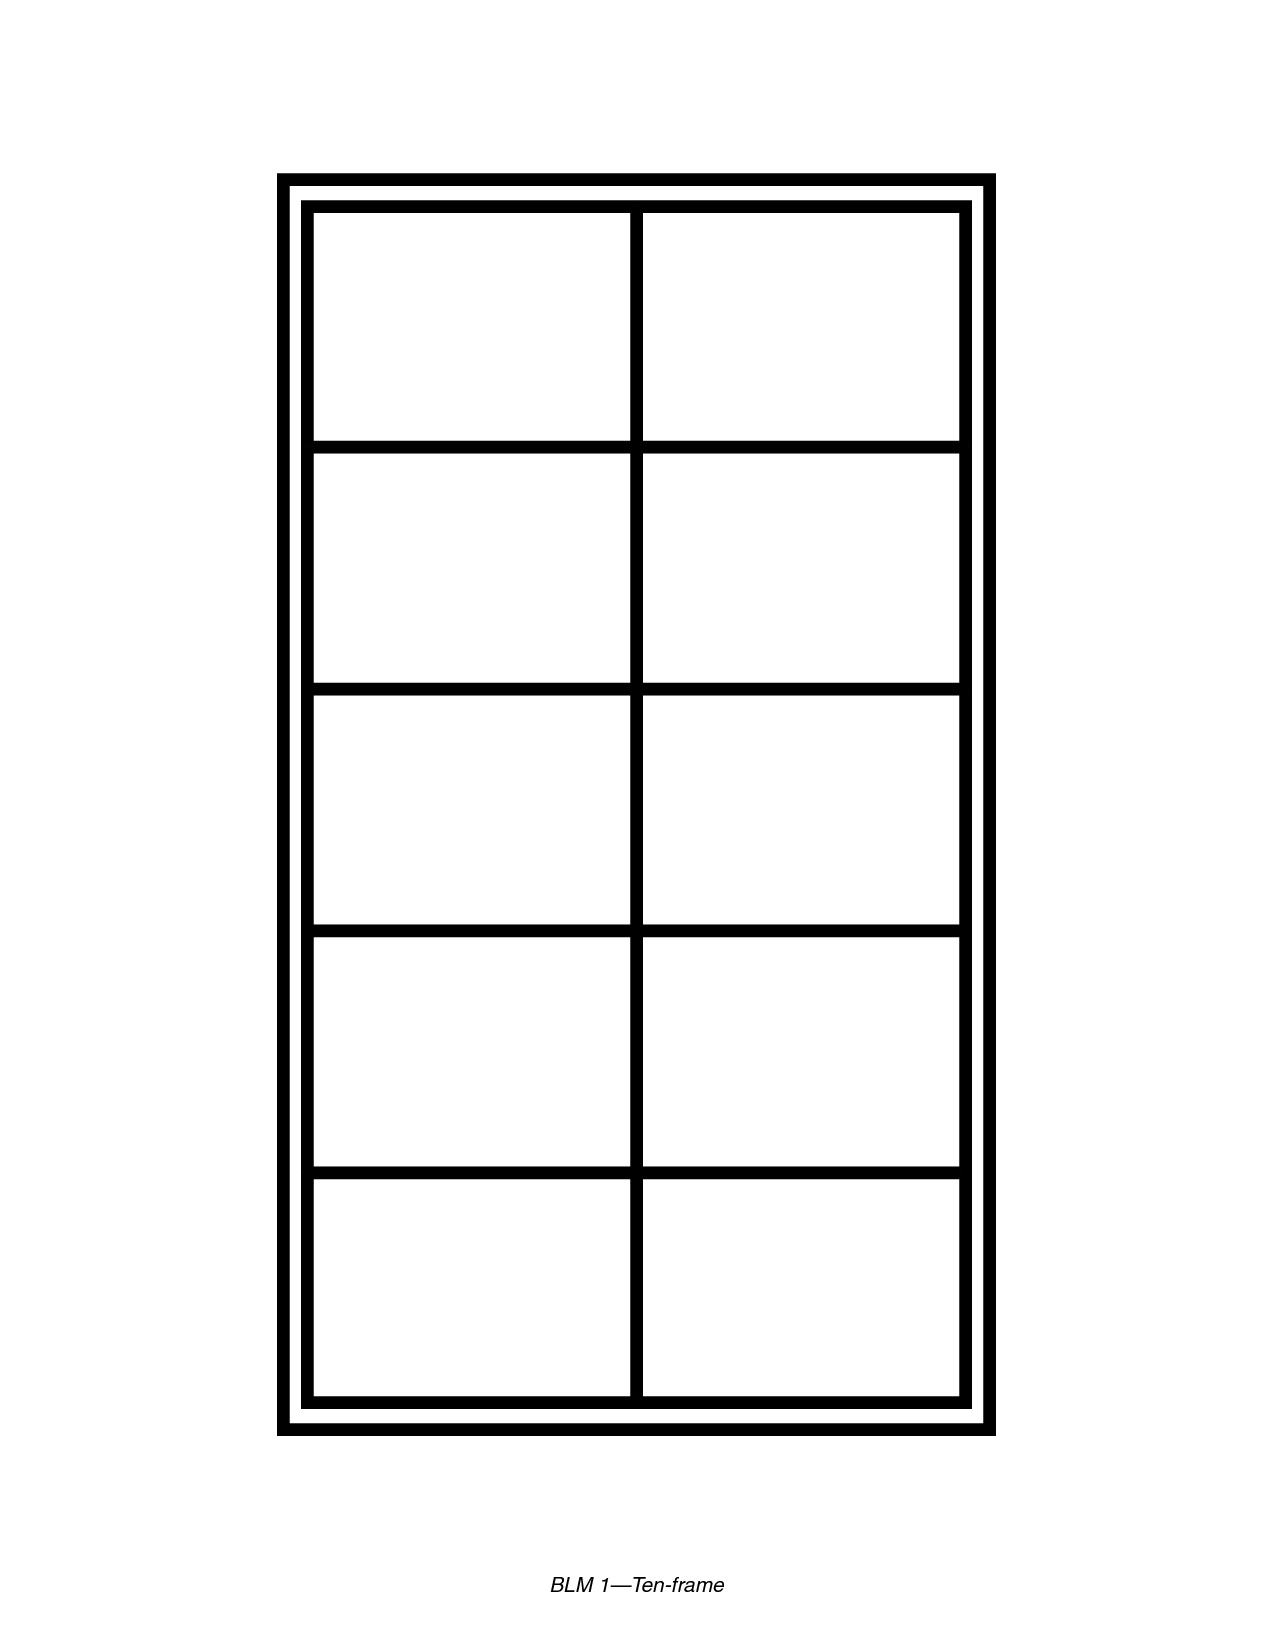 6 Images of Free Printable Tens Frames Templates